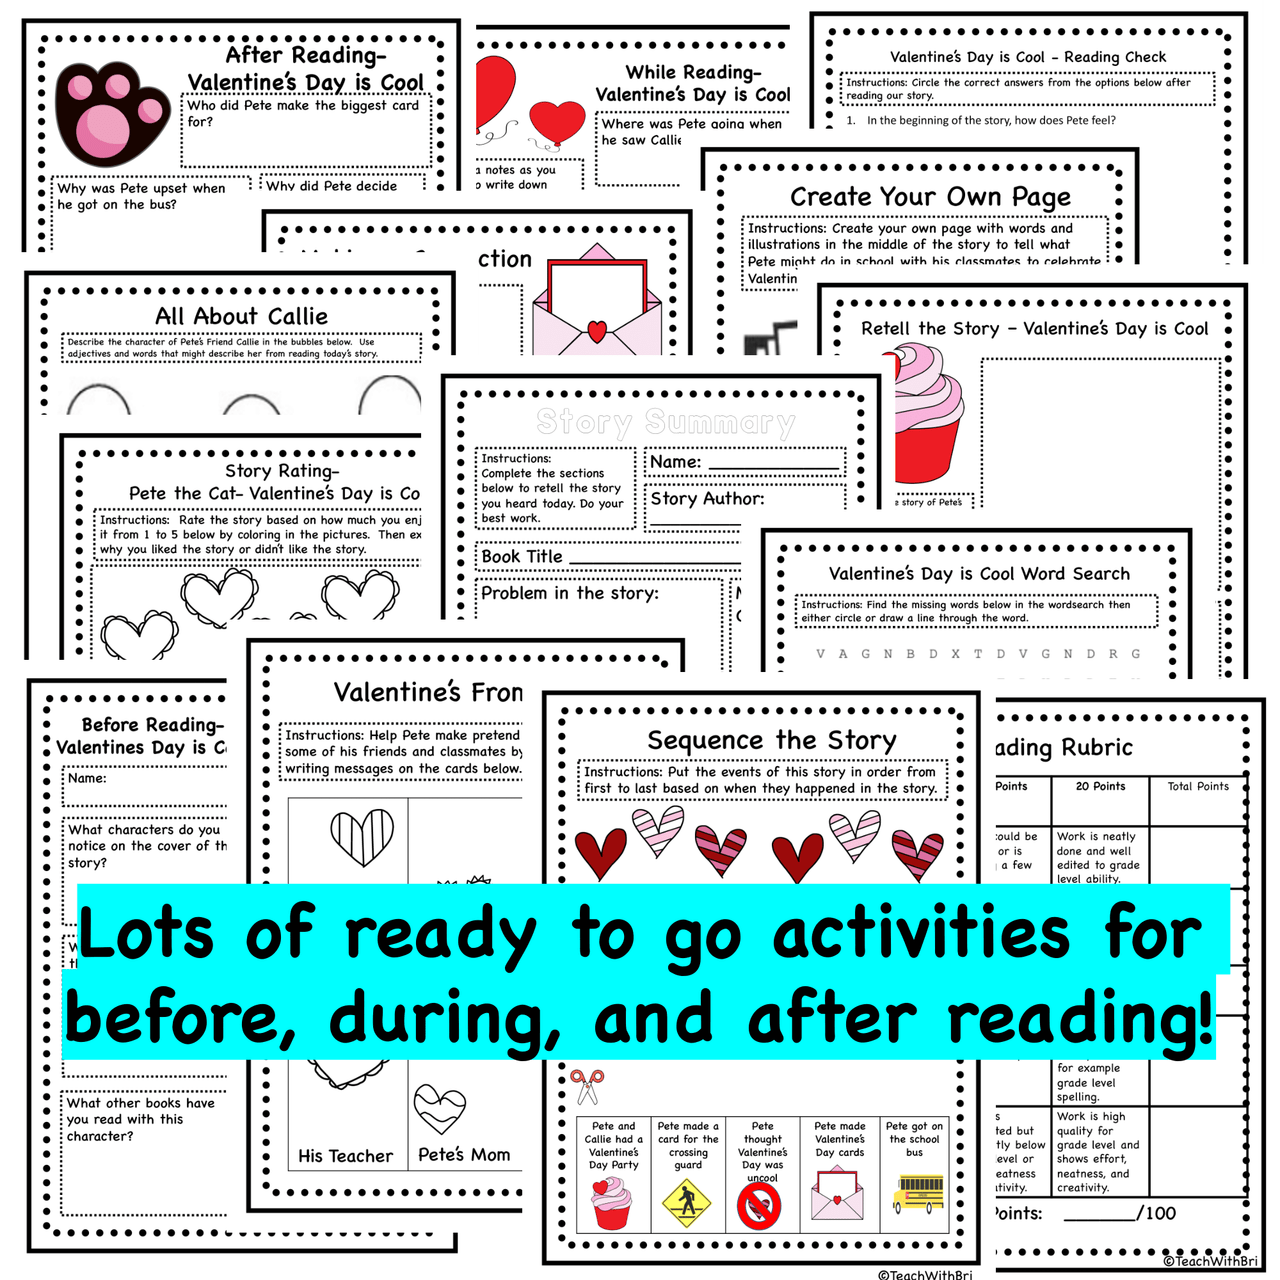 Pete the Cat Valetine's Day is Cool - Read Aloud Activity Pack - PDF Printable Version